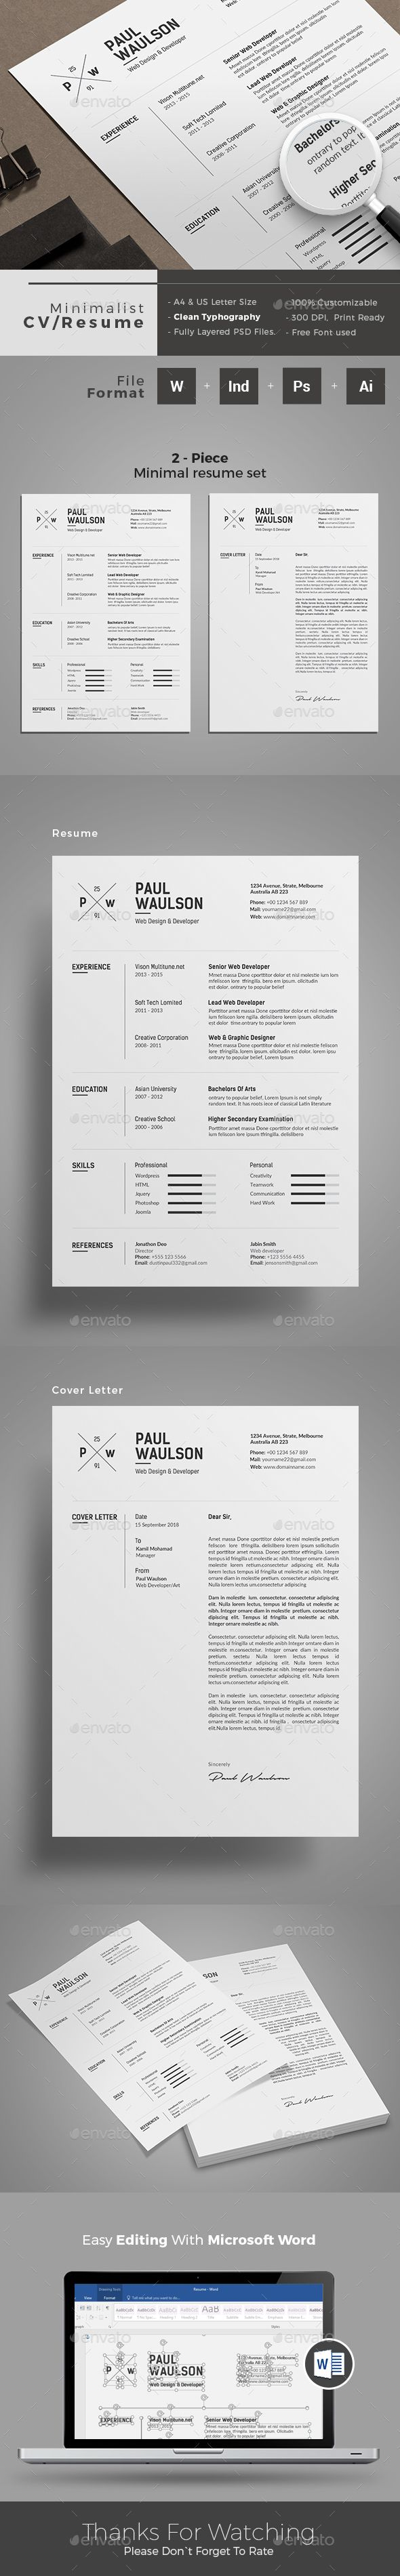 Clean Resume Template Minimal Design Typography Inspired